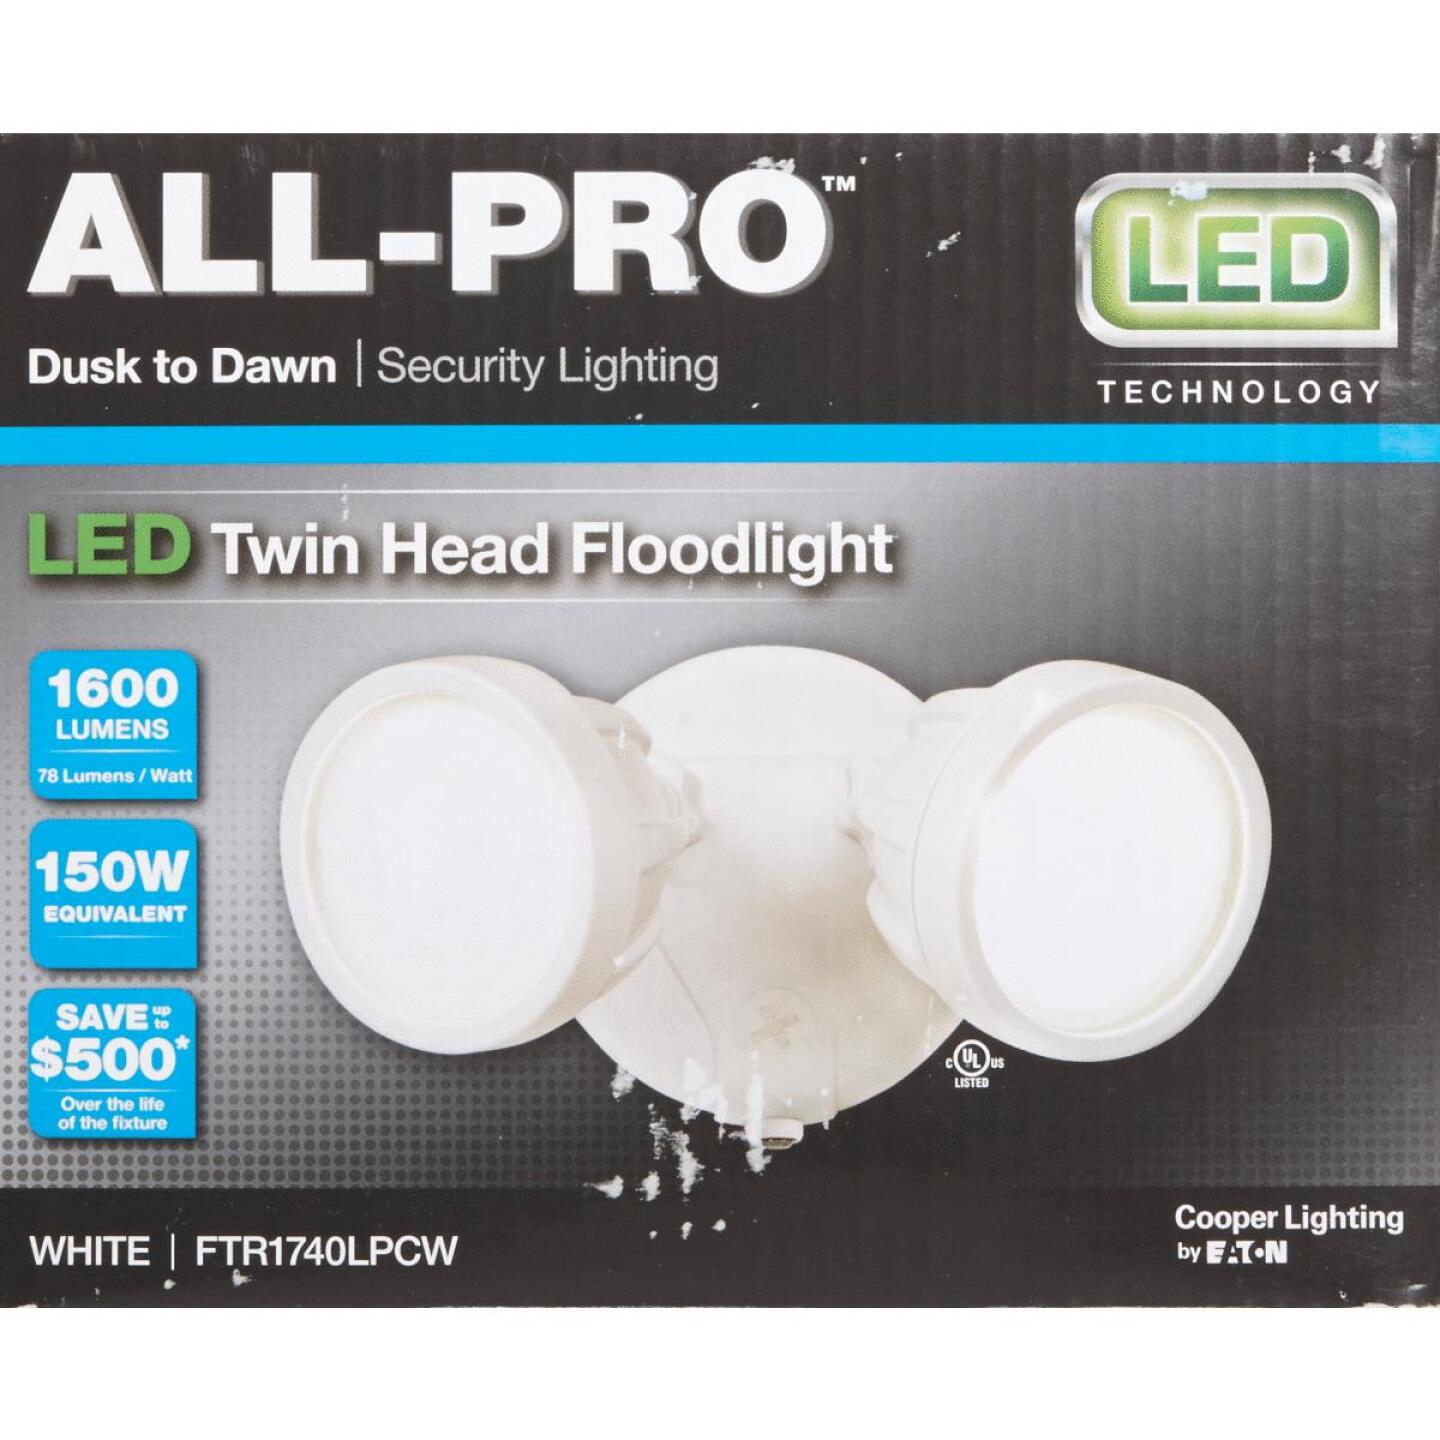 All-Pro White Dusk To Dawn LED Floodlight Fixture Image 2